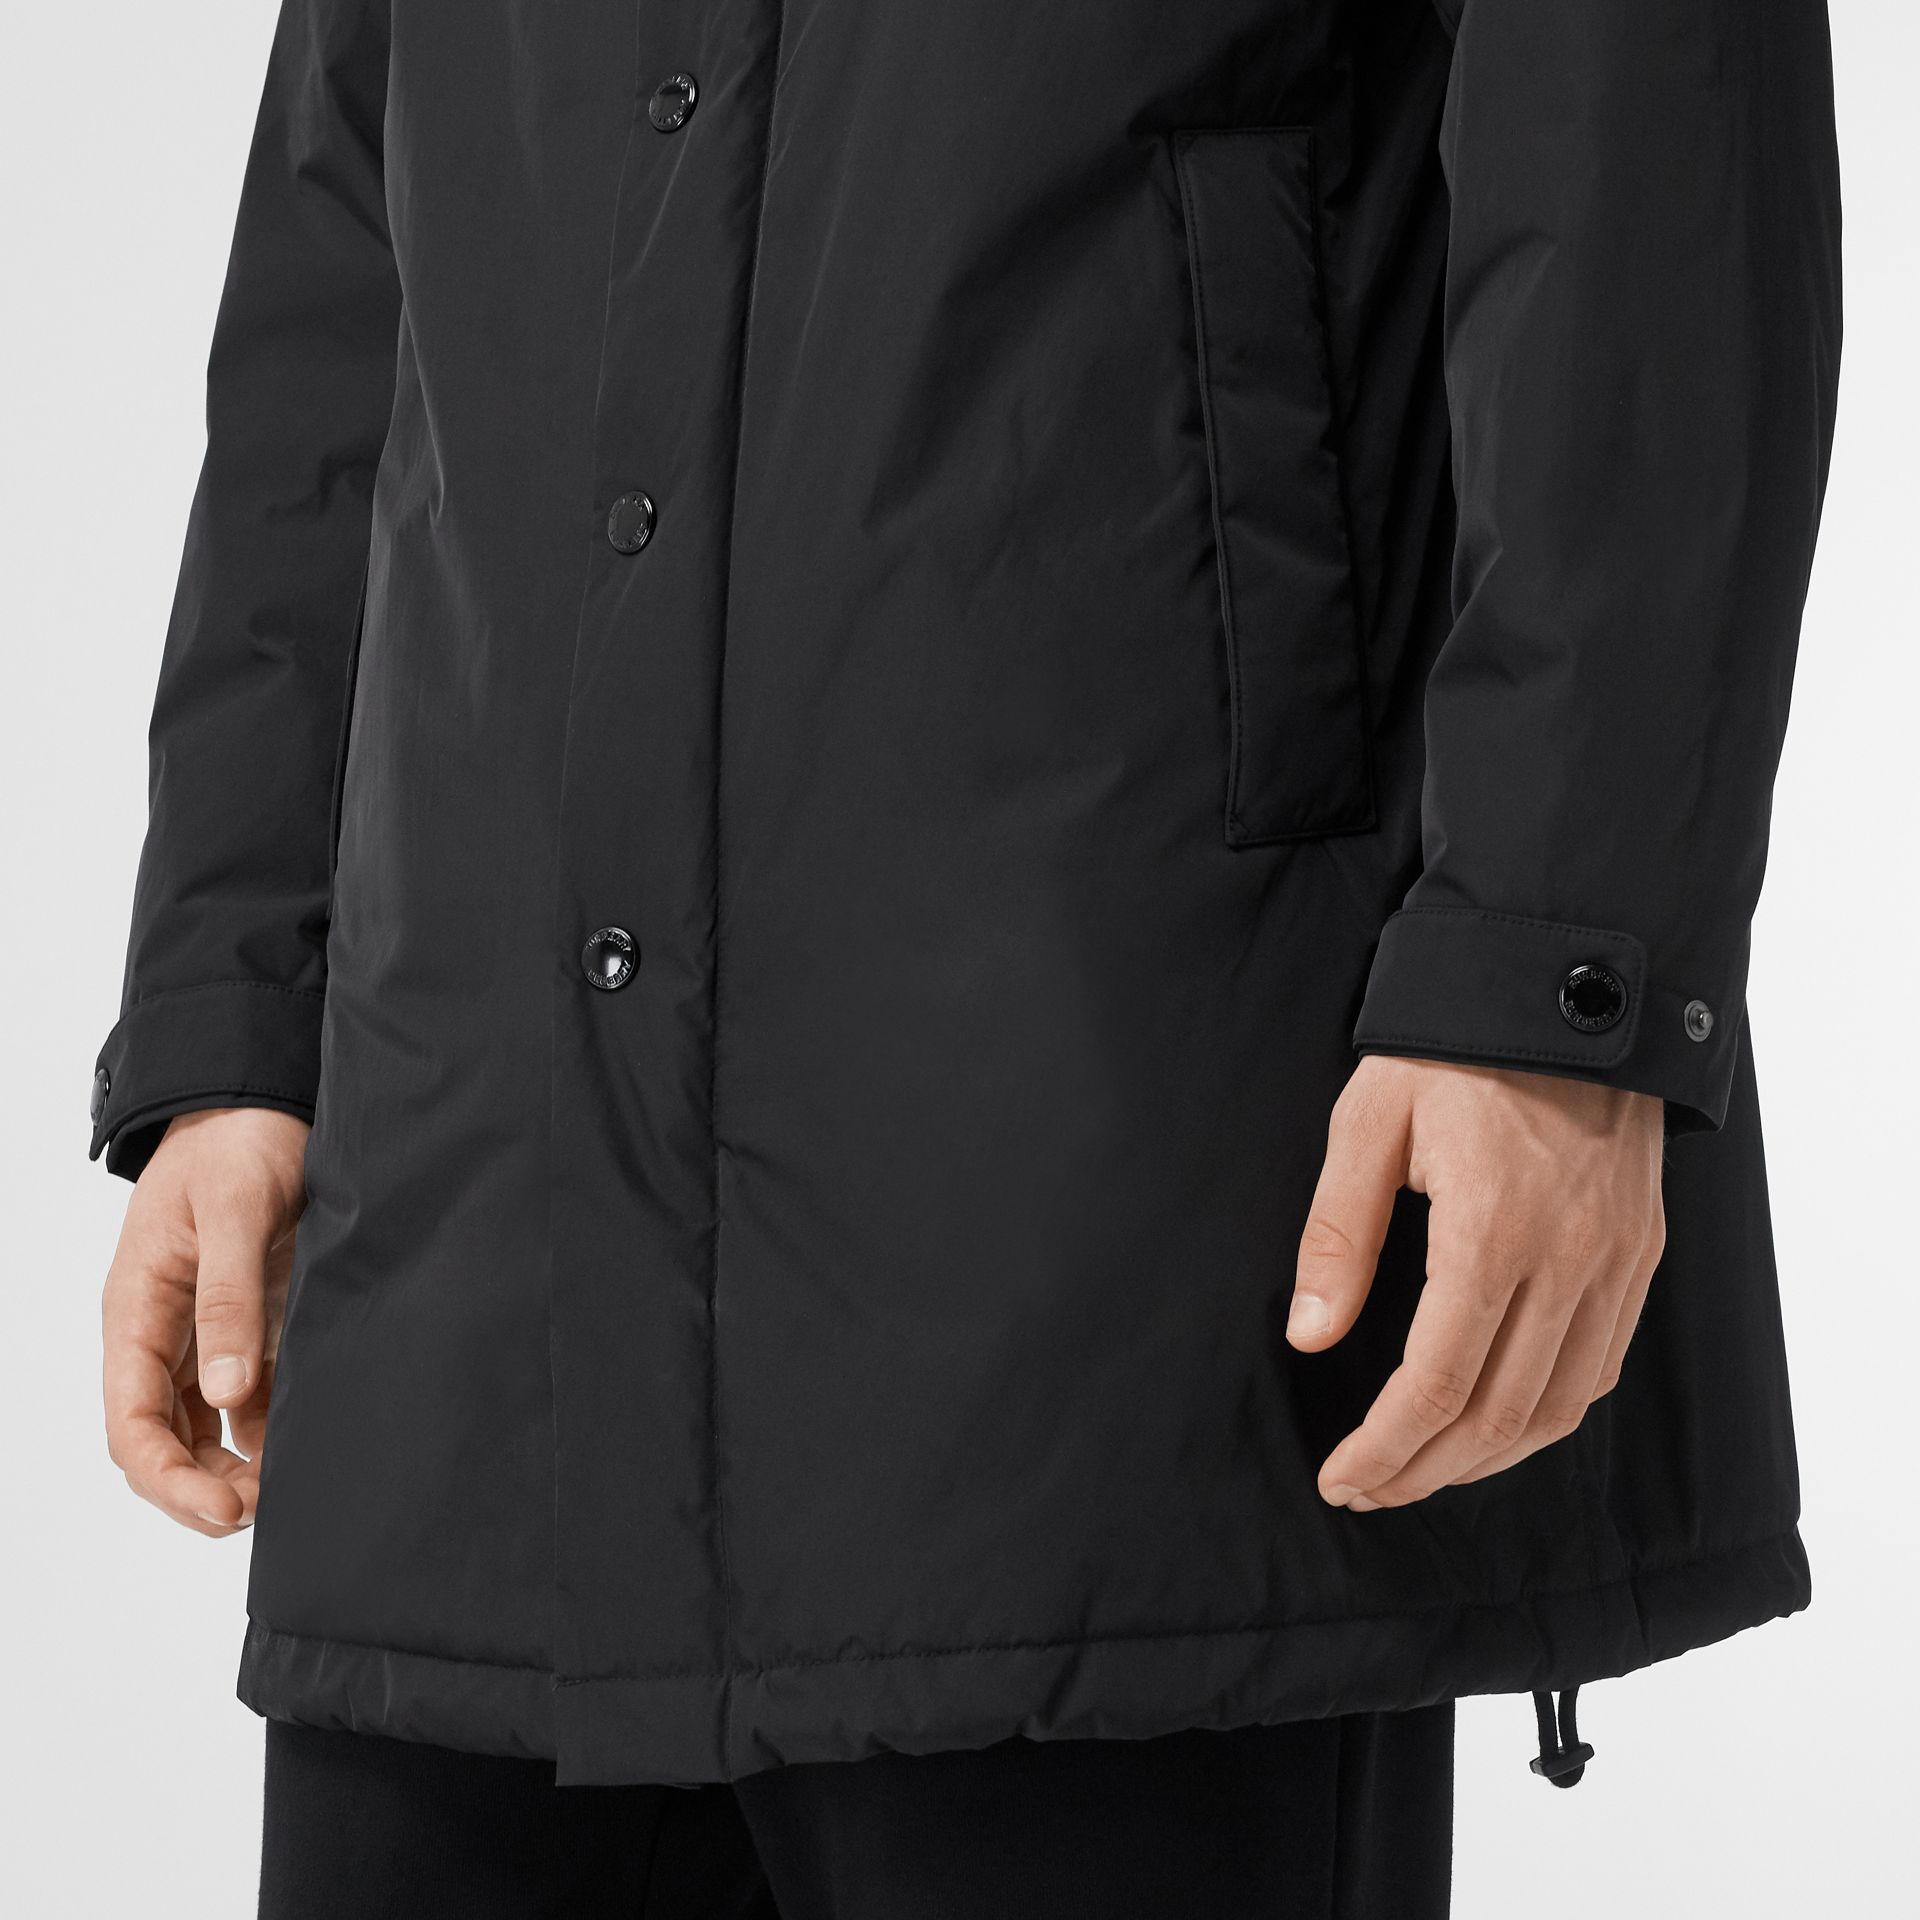 Monogram Motif Nylon Twill Hooded Coat in Black - Men | Burberry Canada - gallery image 4